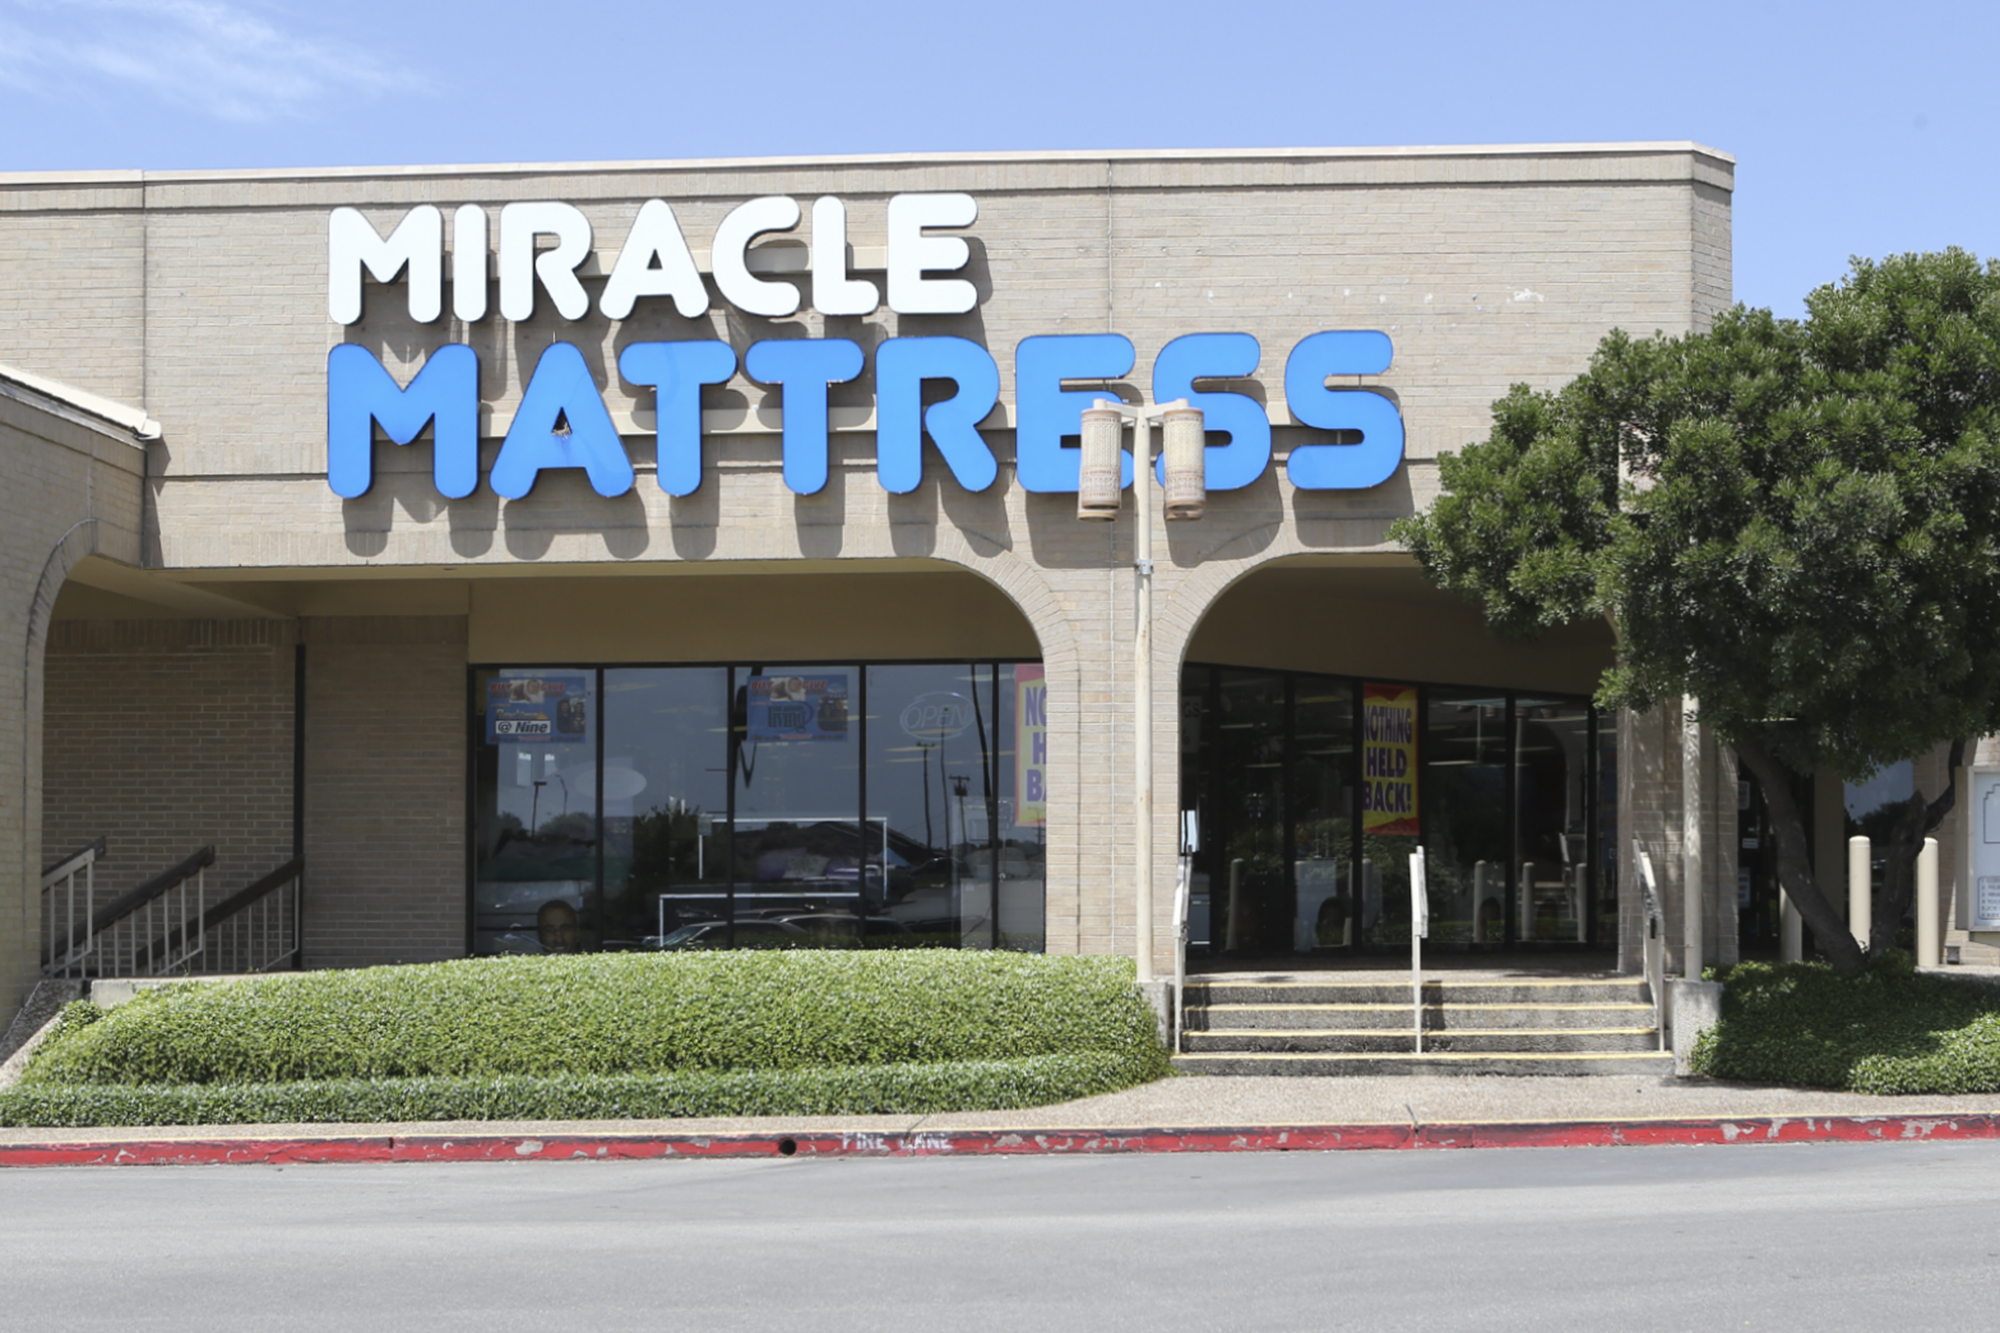 san antonio mattress store to reopen after controversial 9 11 parody